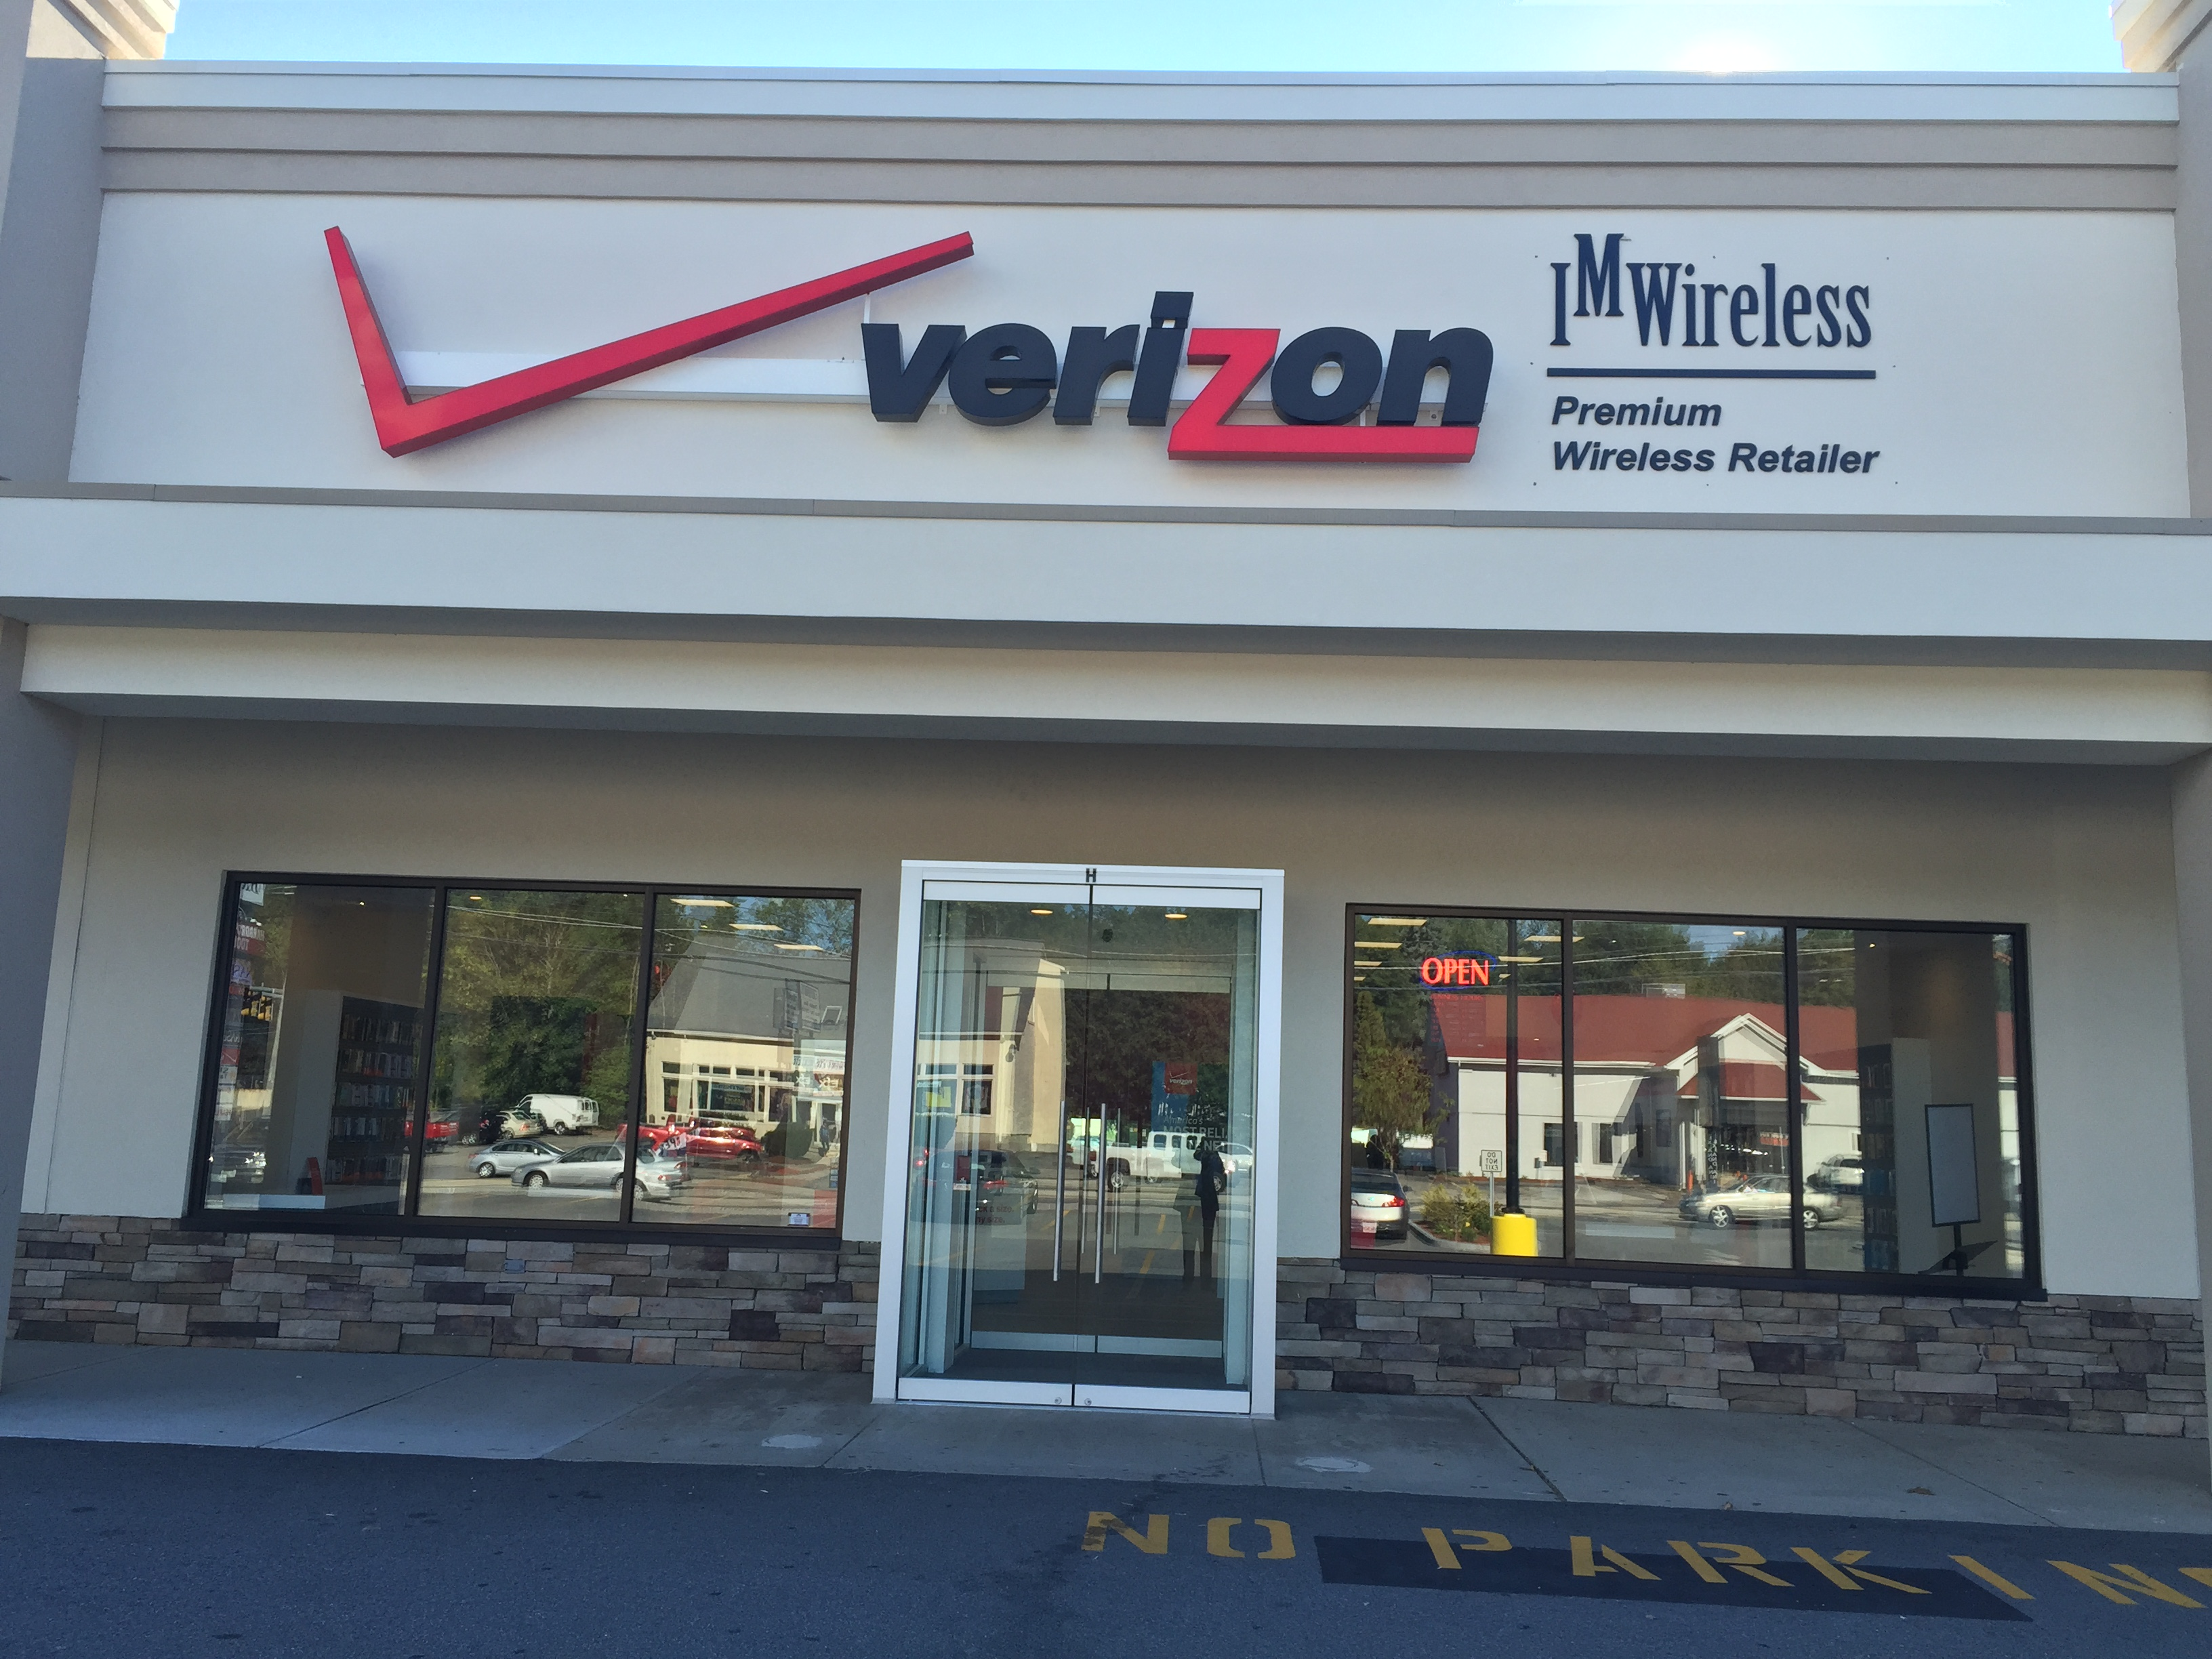 #Sanat Palia . Sanat Palia is Owner of Verizon Wireless for IMWireless stores in MA zone. IM Wireless is a premium retailer that has been doing business for past 16 years and successfully seen the growth over the years.  Visit for more details : https://www.linkedin.com/in/sanat-palia-pmp-462882